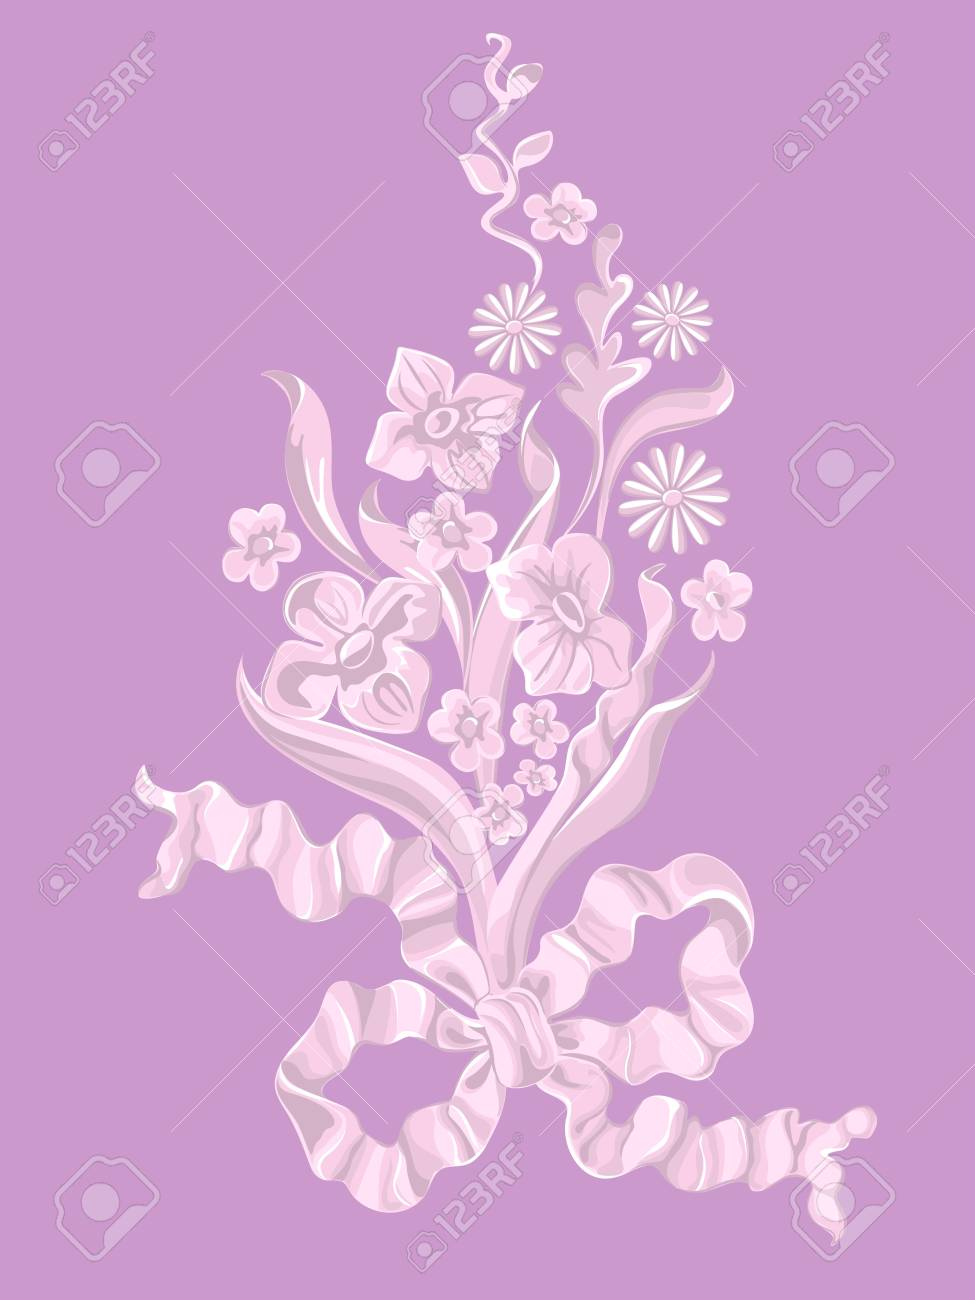 Bouquet of flowers with a bow. Stock Vector - 16556565